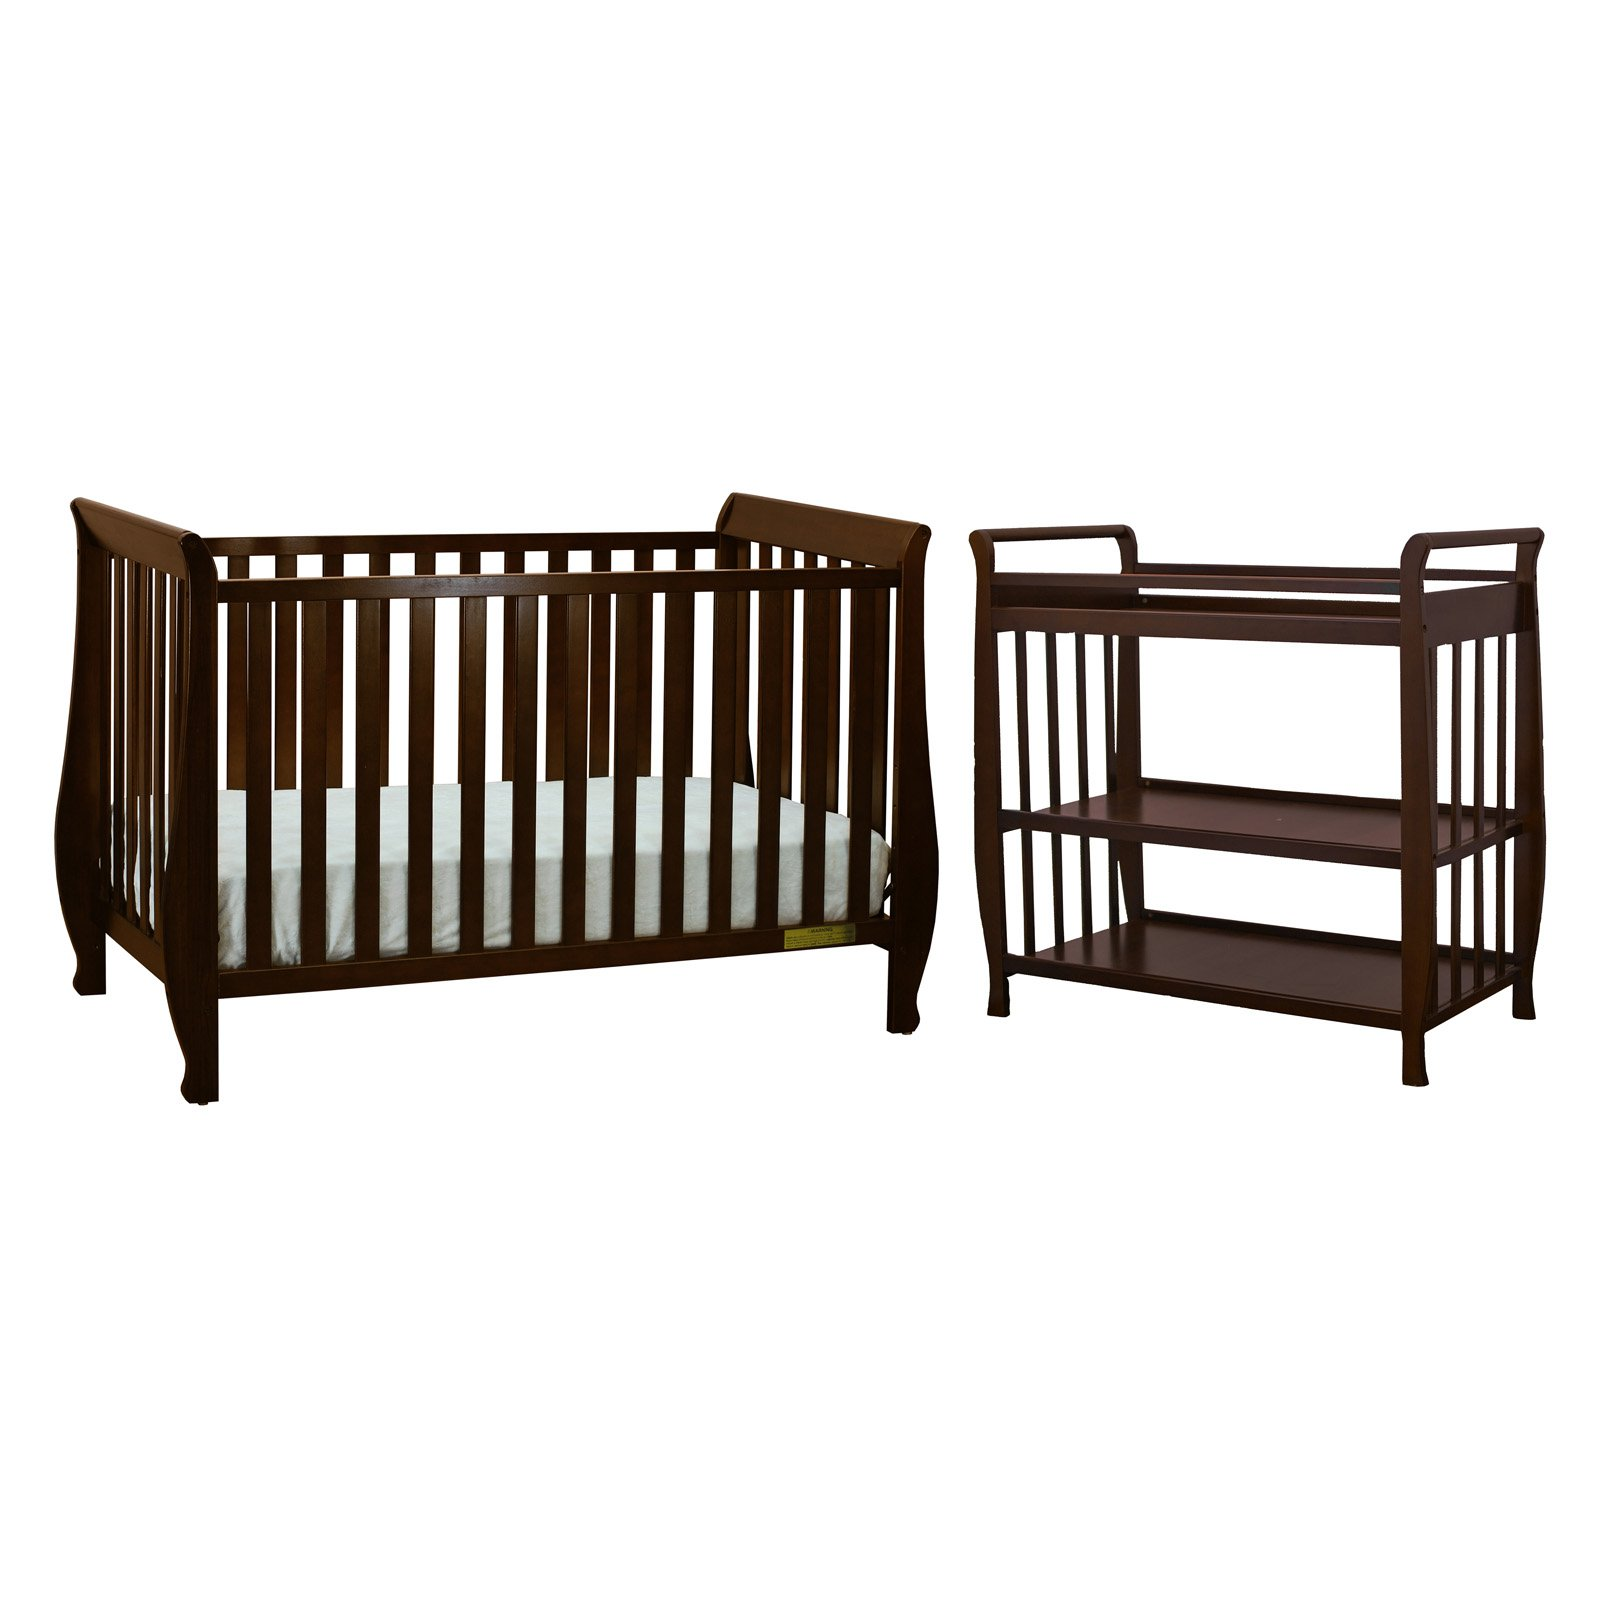 Athena Naomi 4-in-1 Crib with Summer Changing Table